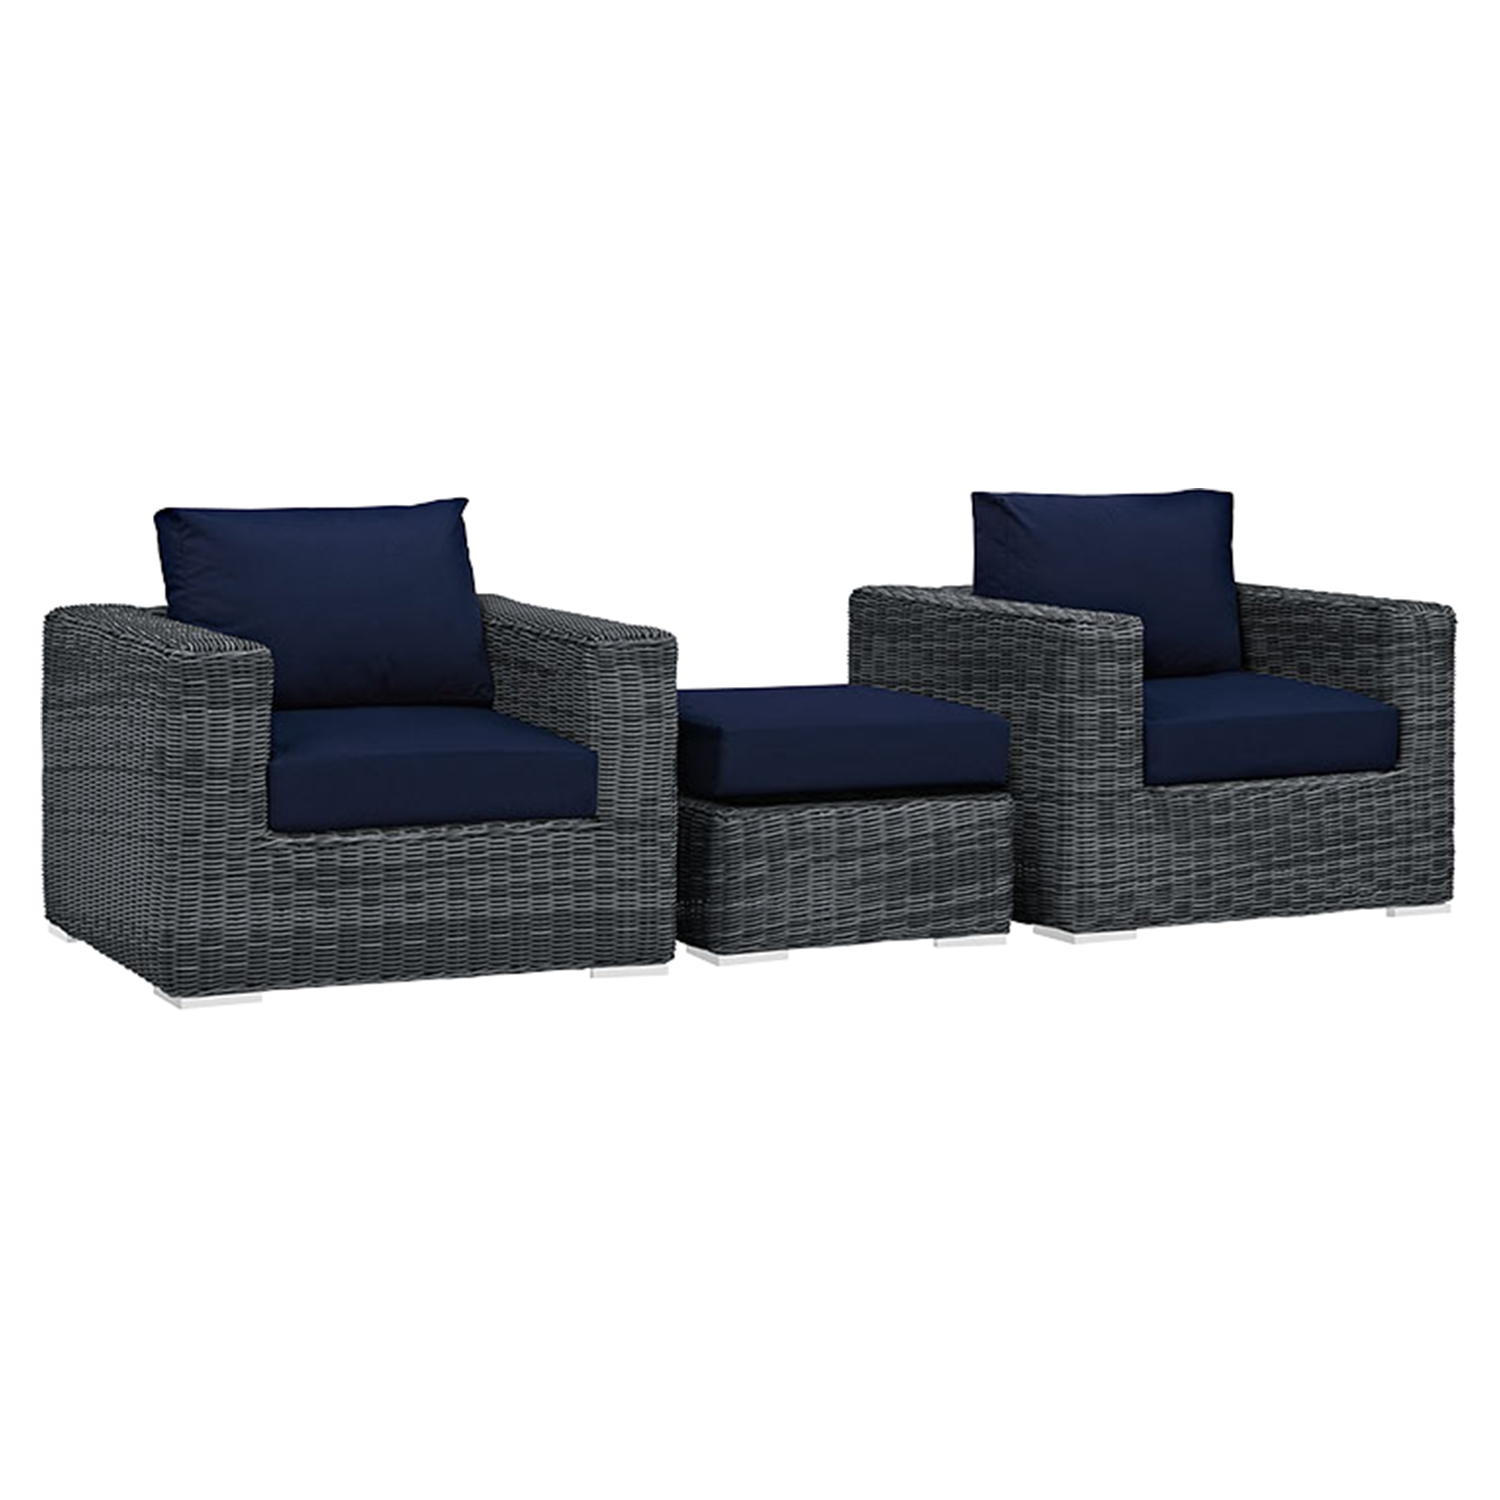 Summon 3 Pieces Outdoor Patio Sofa Set - Sunbrella Canvas Navy - EEI-1905-GRY-NAV-SET